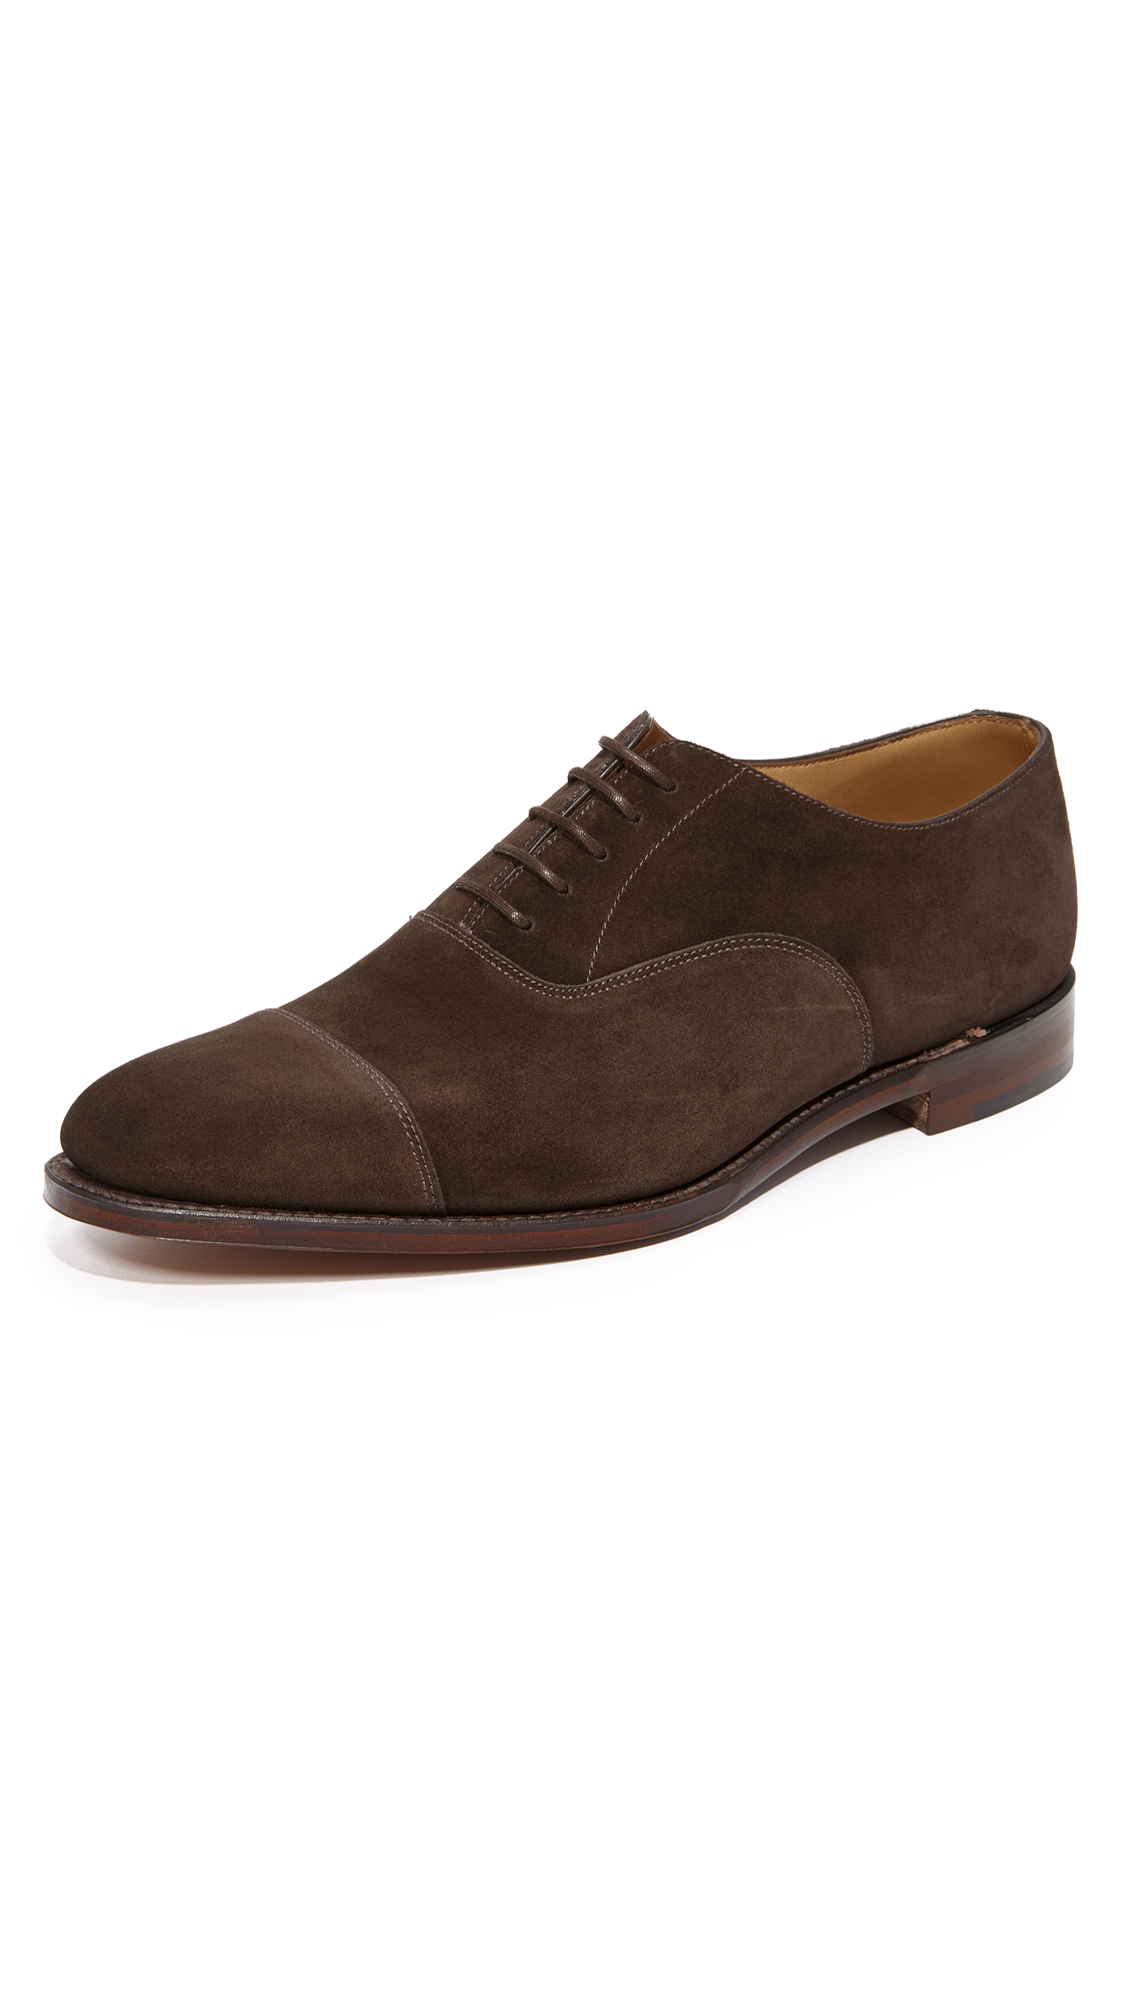 LOAKE 1880 Aldwych Cap Toe Oxfords in Dark Brown